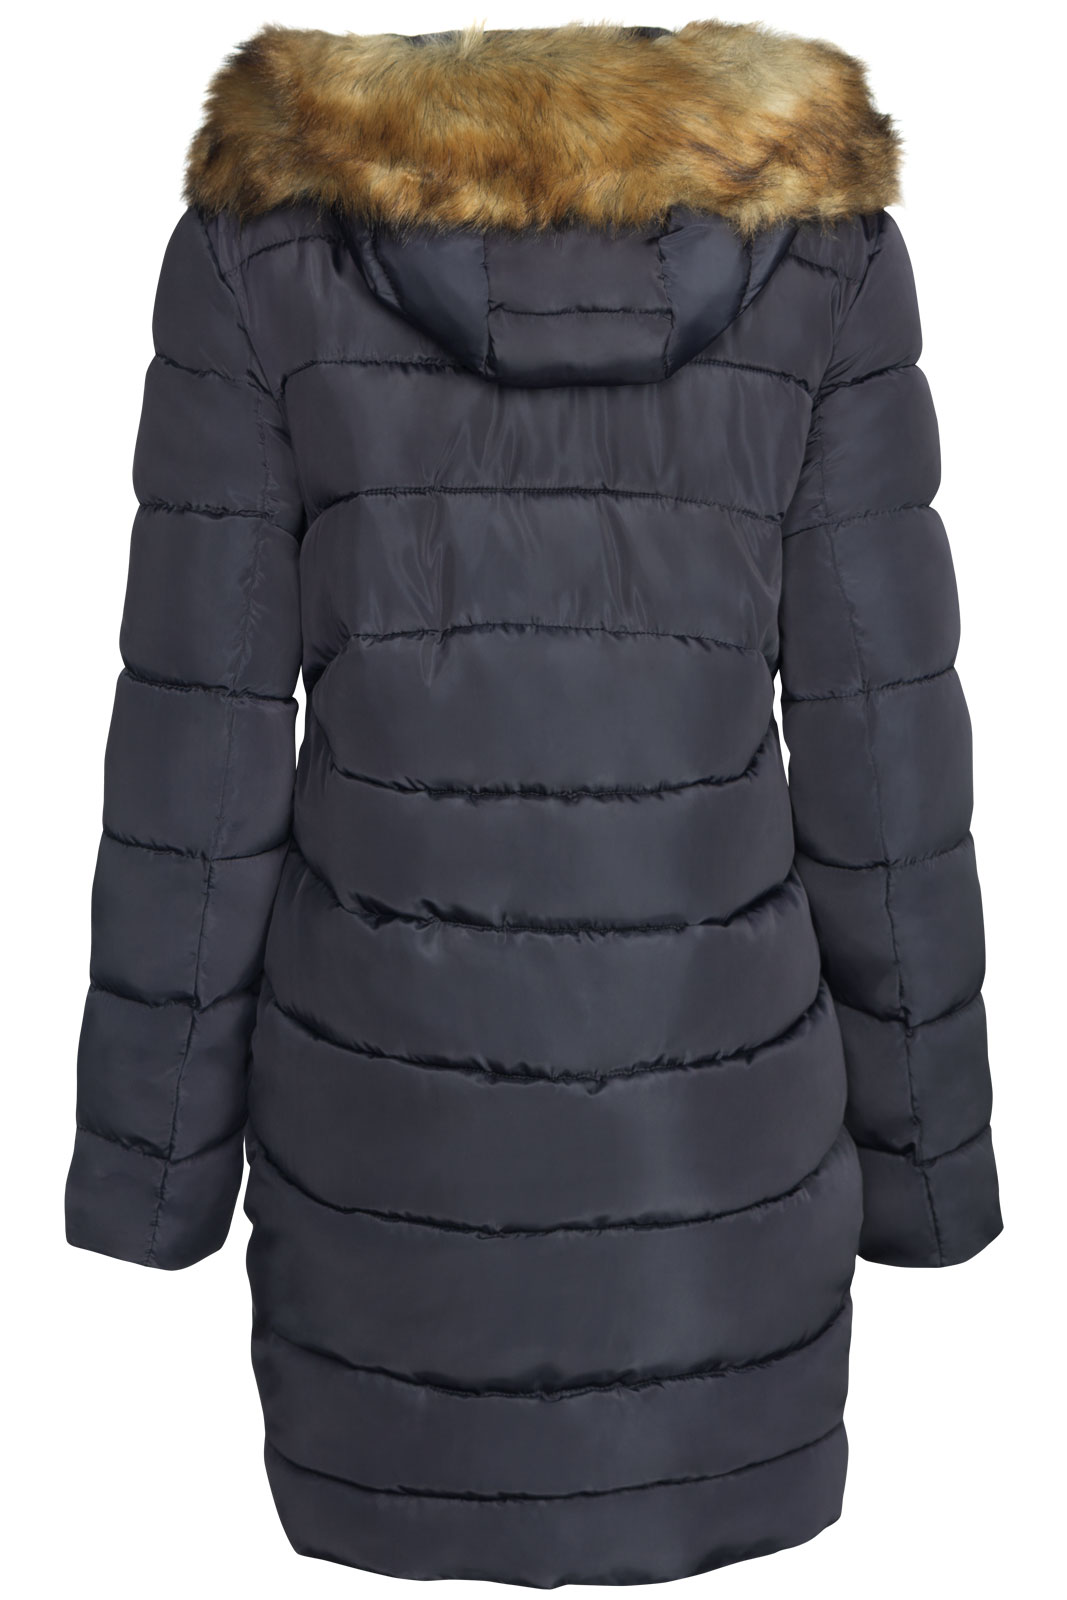 timeless design effc7 db7ee Trisens Damen Winter Parka Fell Kapuze Warm Gefüttert